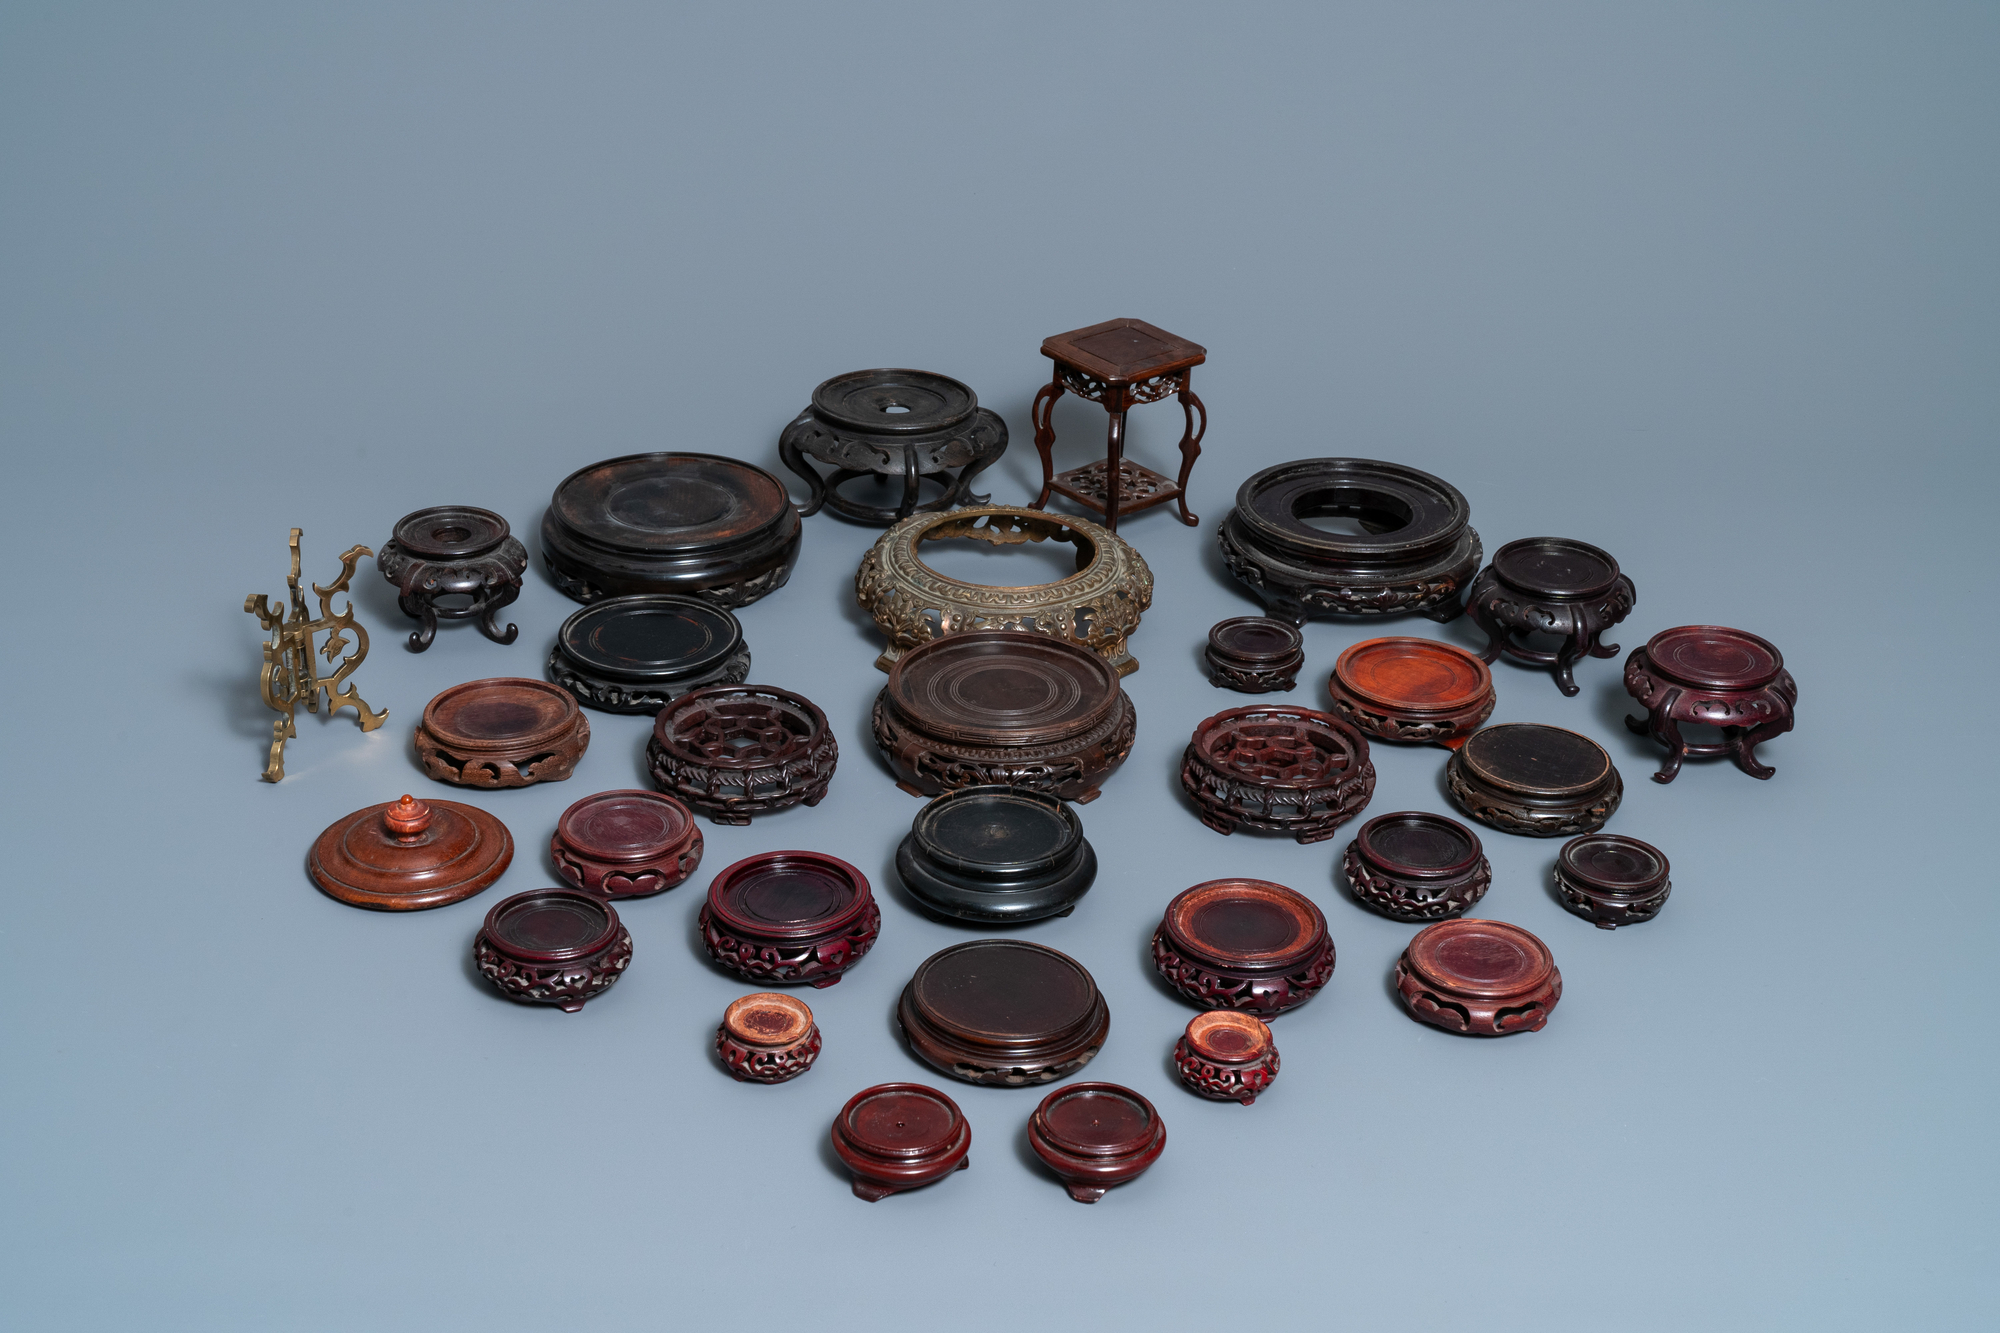 64 Chinese carved wooden stands, 19/20th C. - Image 4 of 4